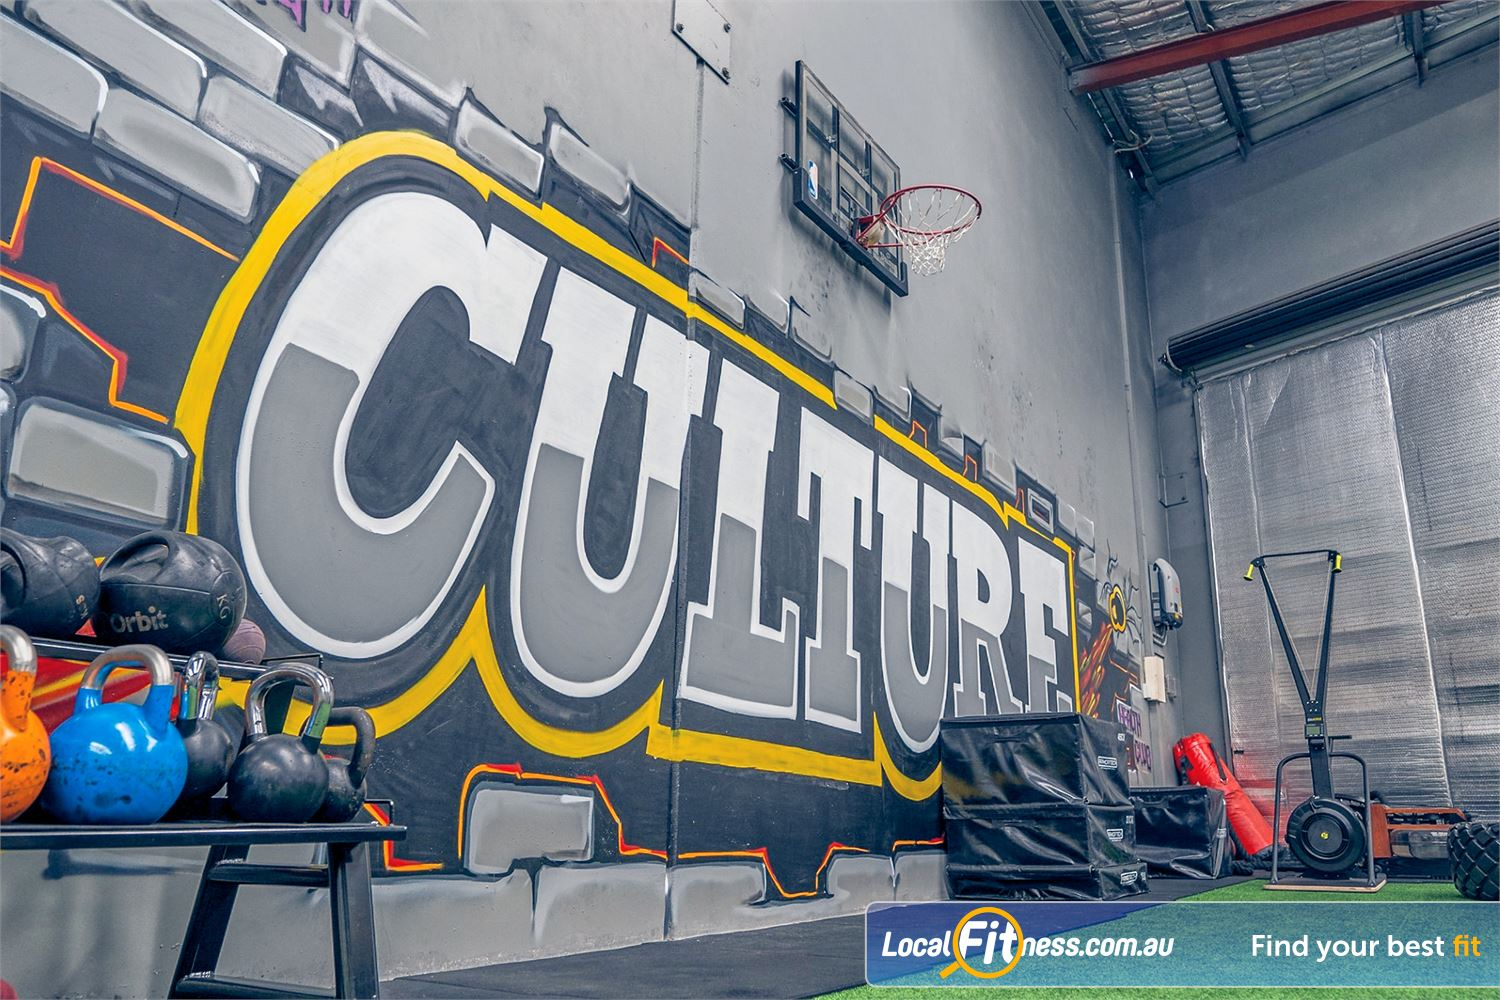 Culture 24:7 Wanneroo The indoor basketball hoop. Challenge our members to determine the king of the court.